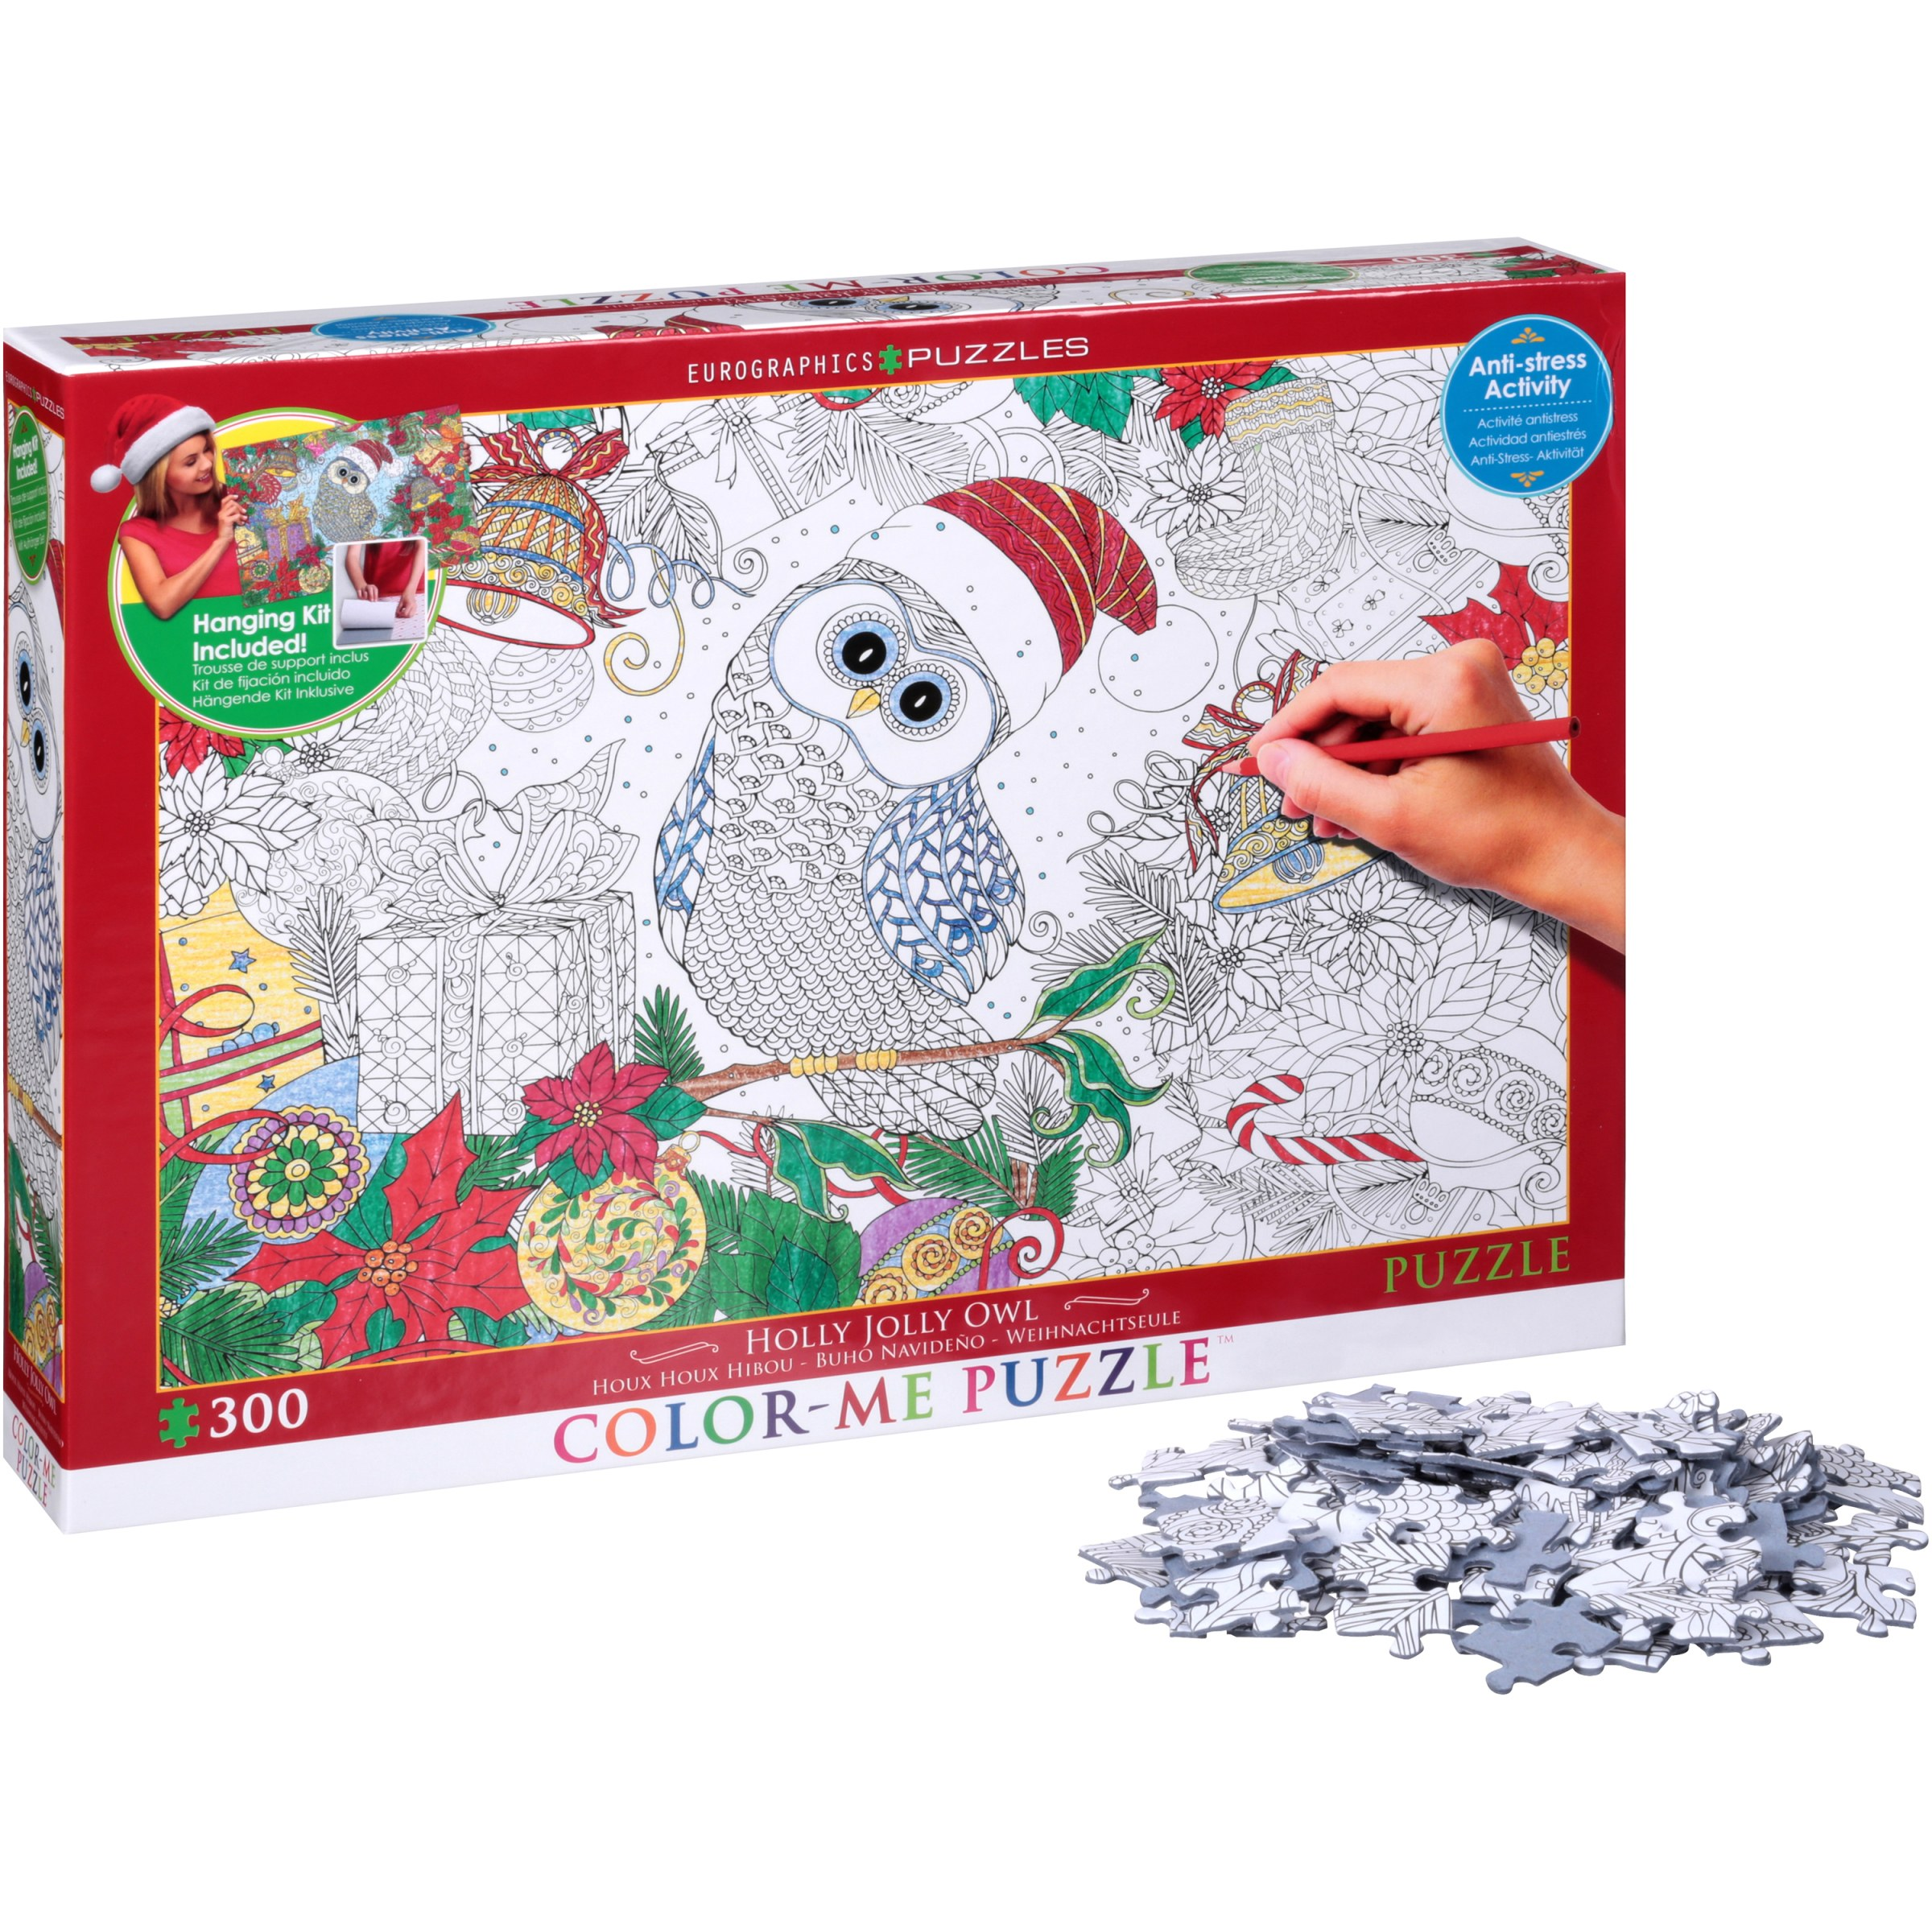 Eurographics Puzzles Holly Jolly Owl Color-Me Puzzle 300 pc Box by EuroGraphics